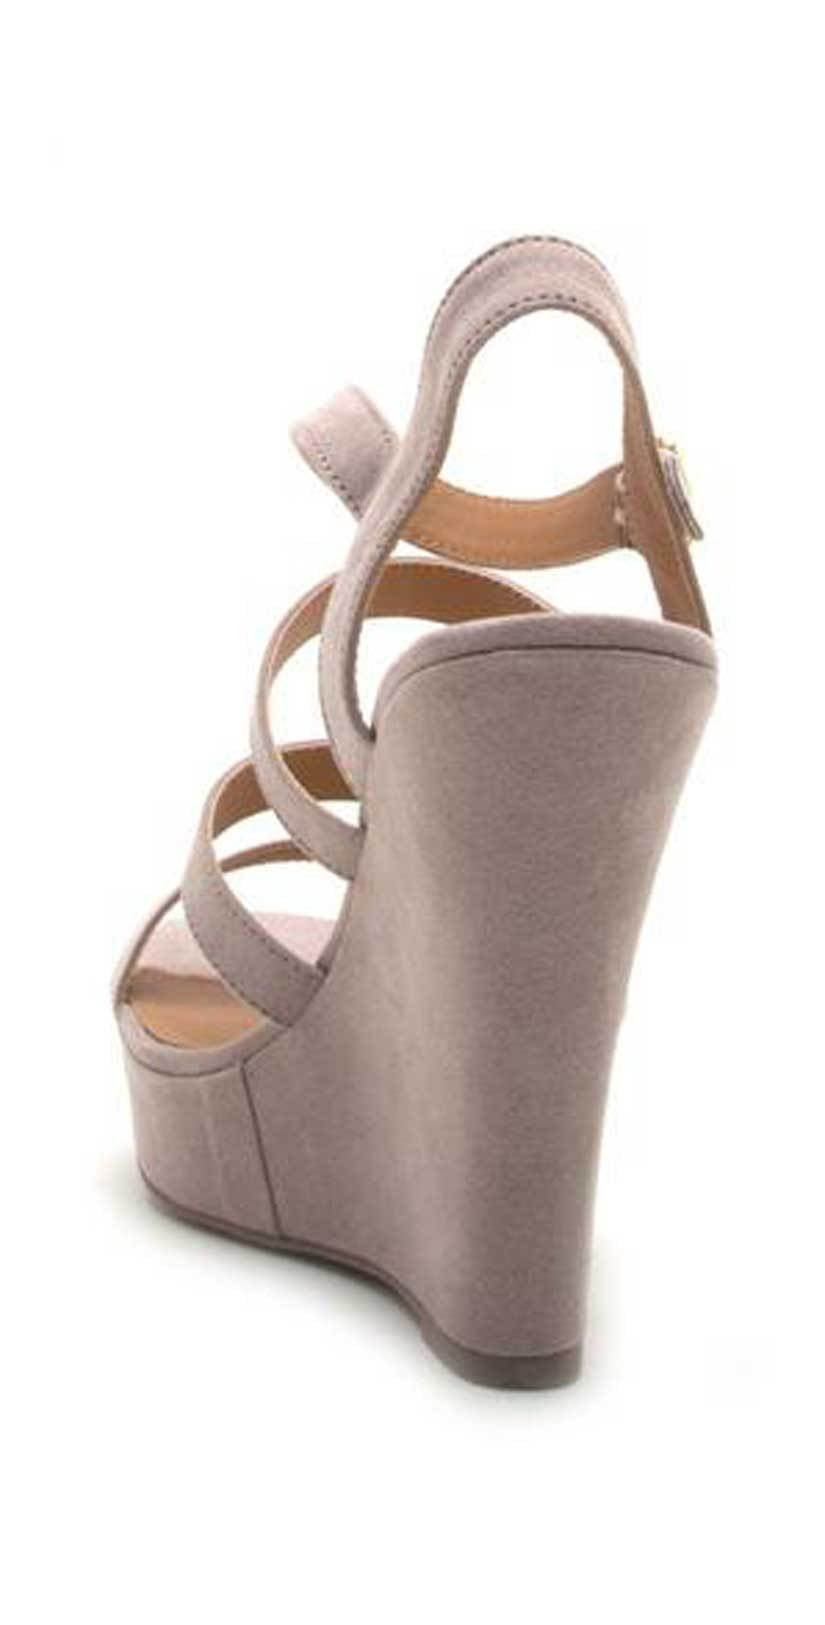 Qupid Shoes Glory Strappy Wedge Sandal in Taupe